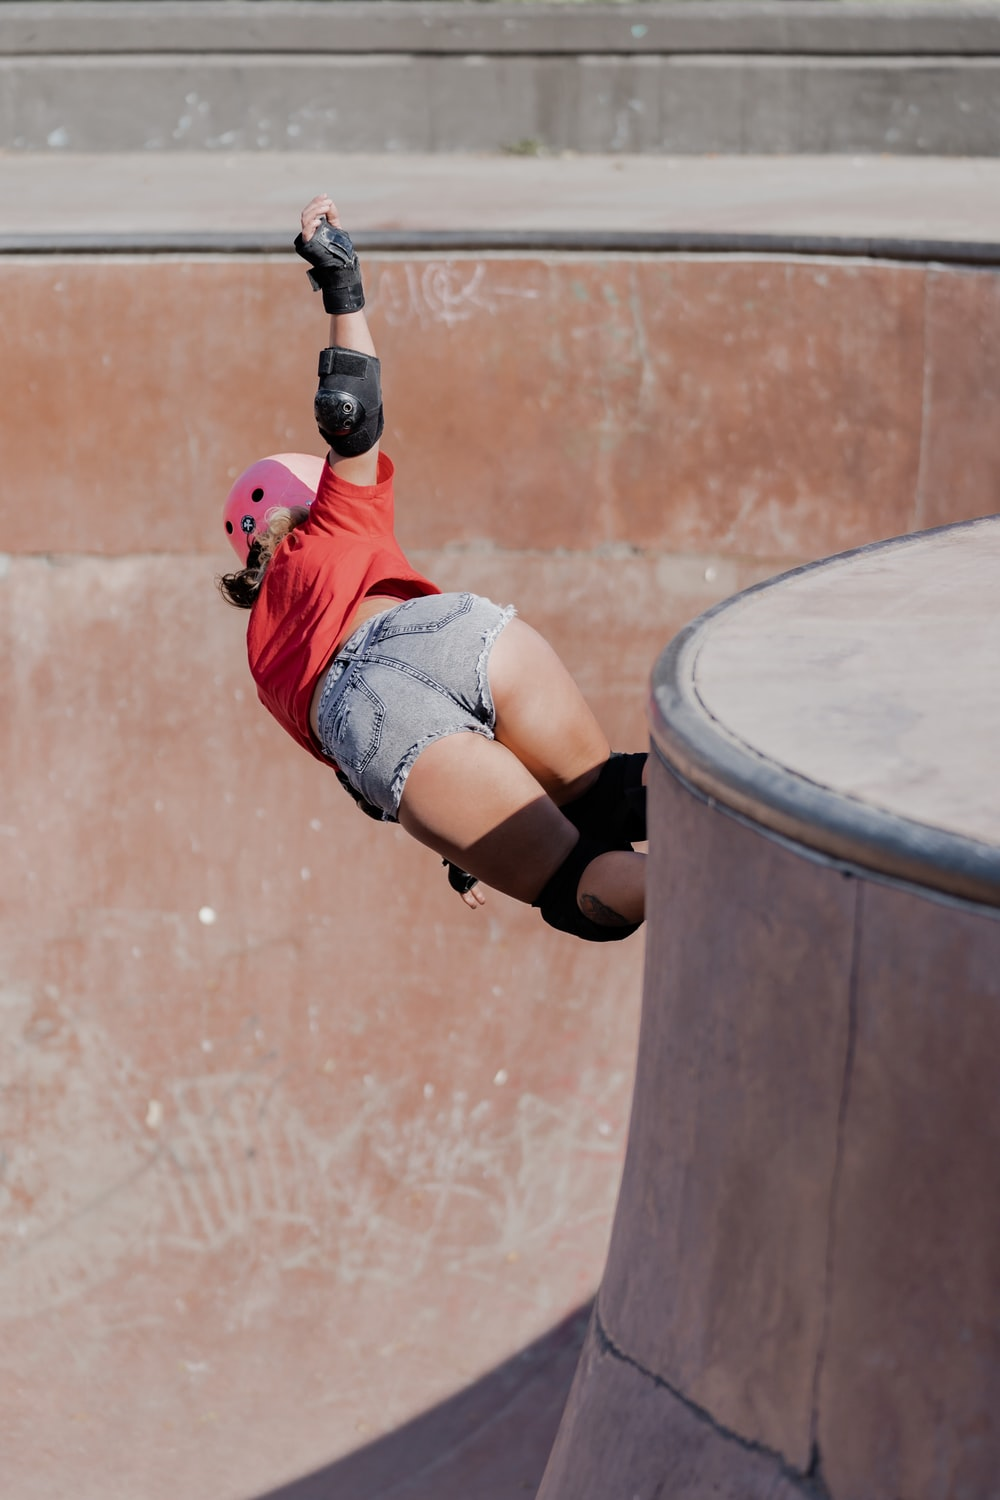 woman in red shirt and blue denim shorts doing skateboard stunts